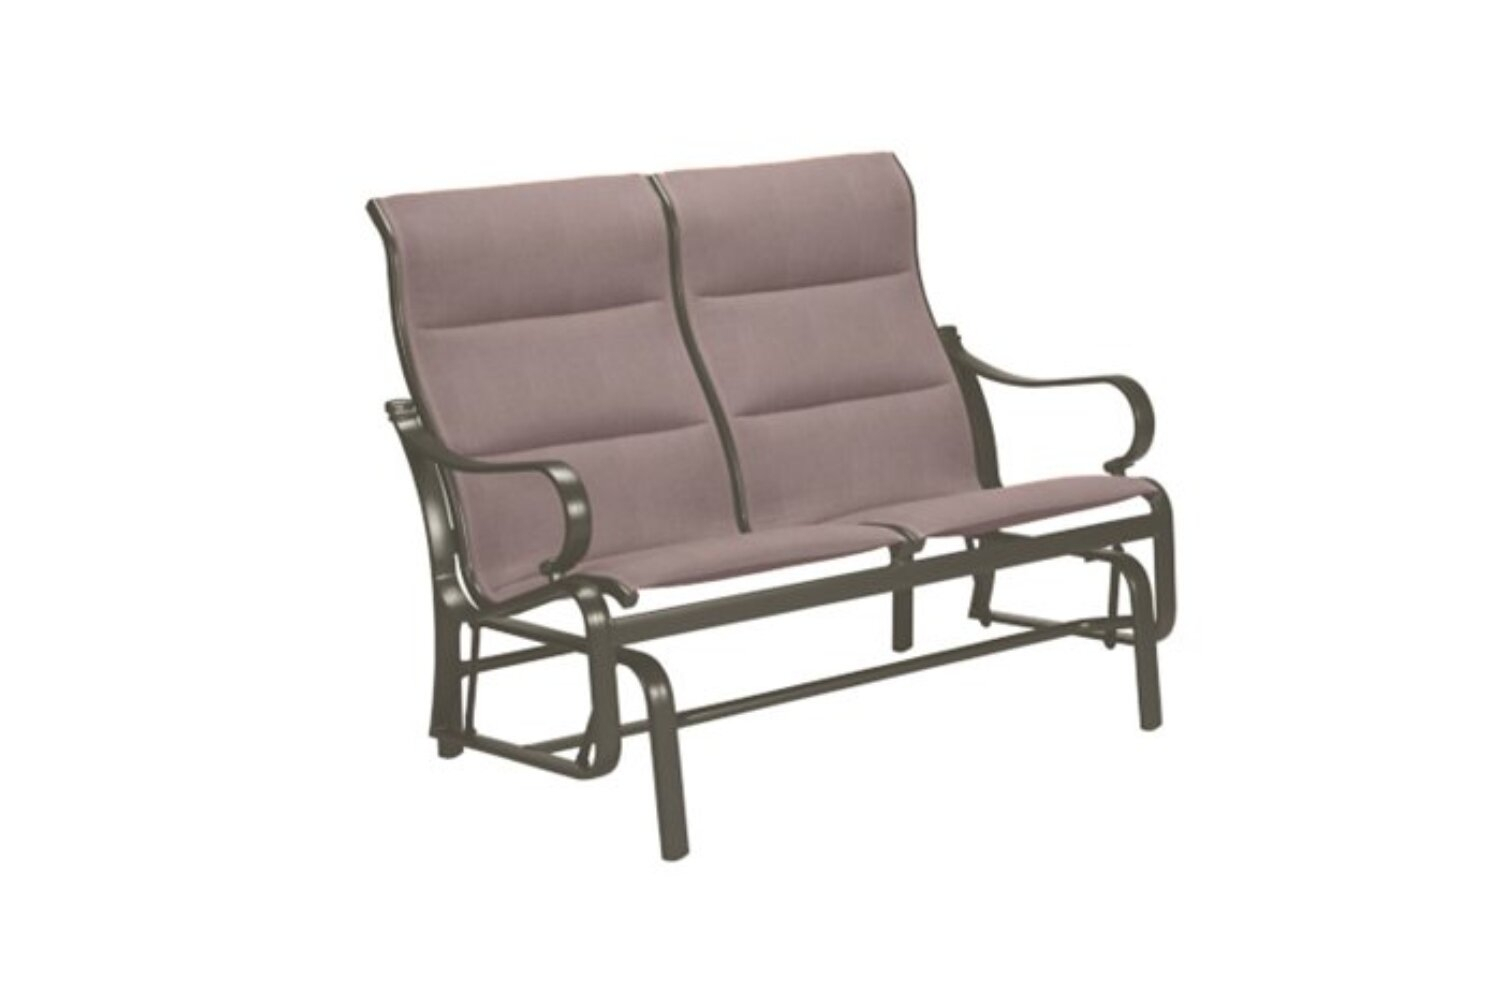 Torino Padded Sling Double Glider Chair With Cushion Within Padded Sling Double Glider Benches (View 17 of 25)